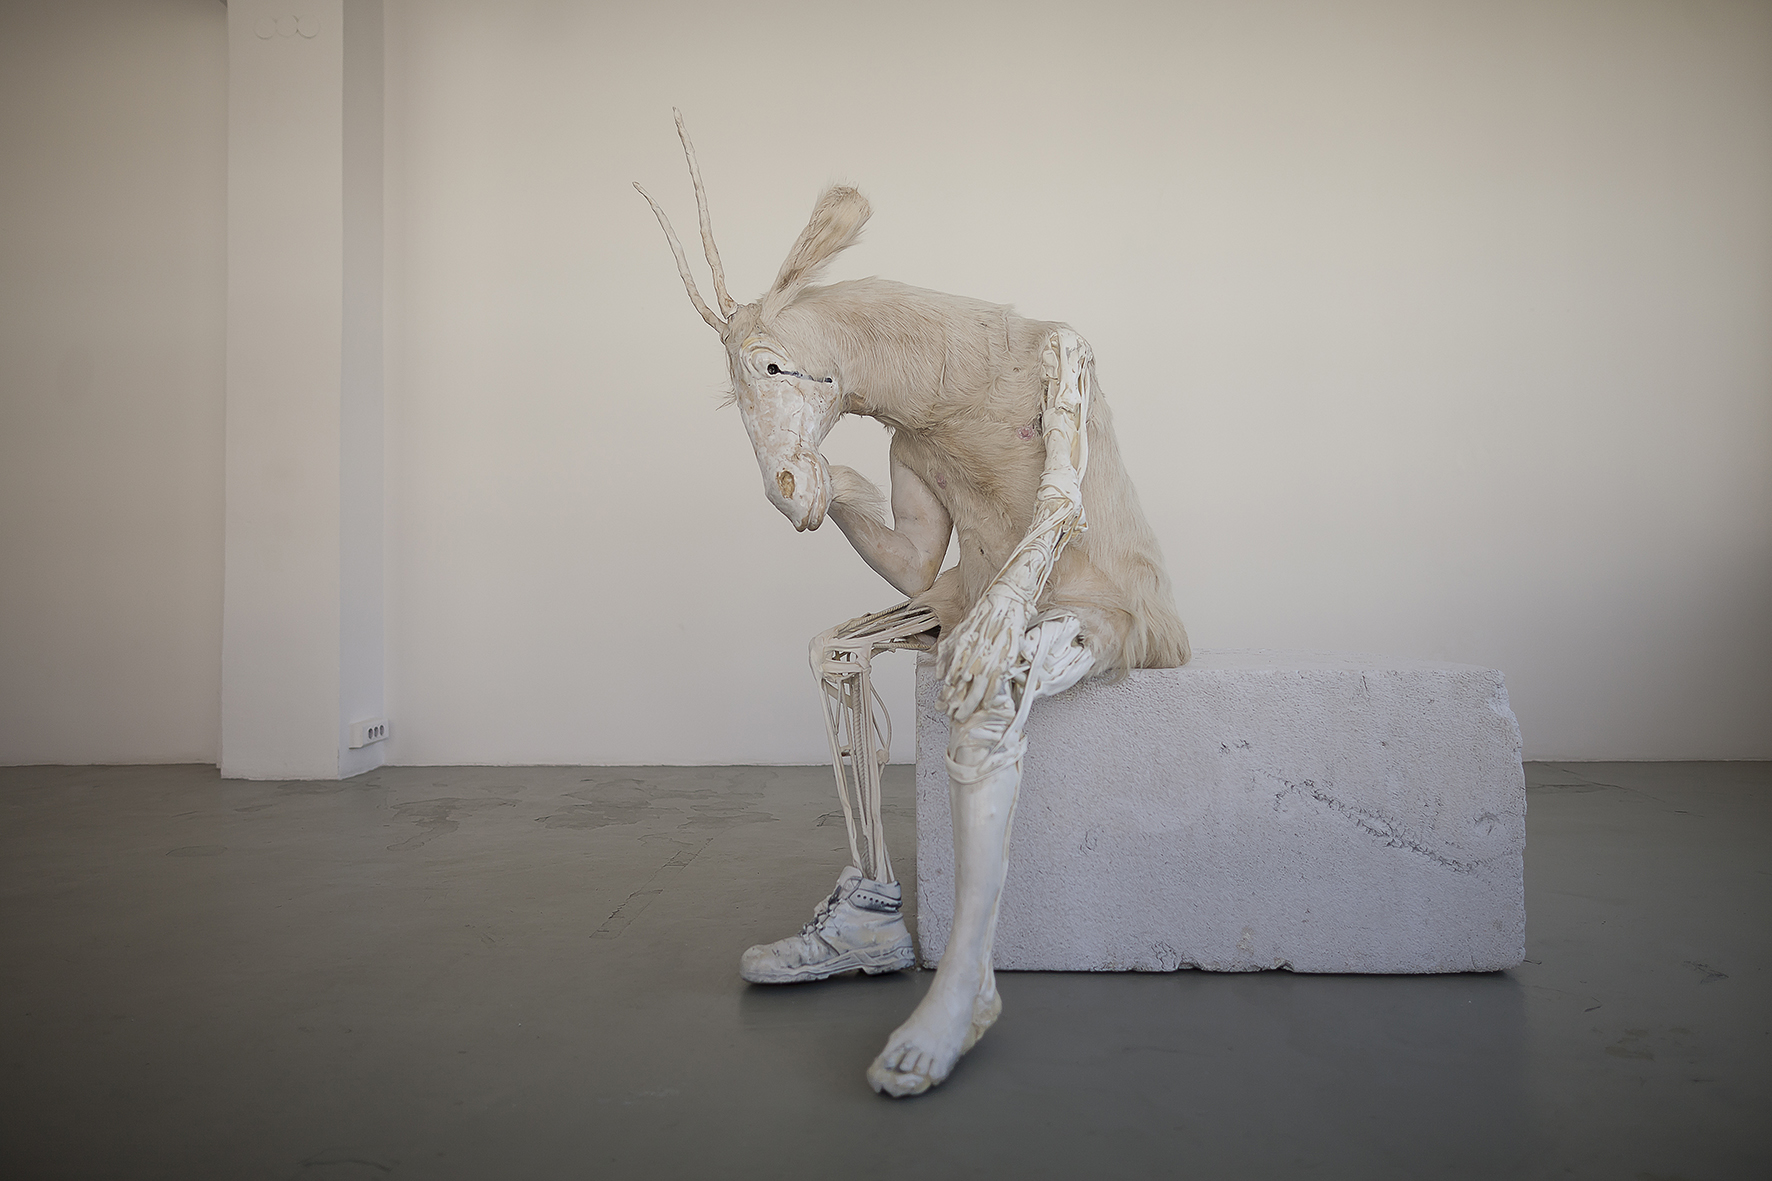 Pawel Althamer, Self-Portrait as the Billy-Goat, 2011 Glazed ceramic, plastic, metal, resin cast, goat fur, used shoe, painted Styrofoam plinth, 152 x 152 x 154 cm, Courtesy the artist and Foksal Gallery Foundation, Warsaw, Photo: Bartosz Stawiarski